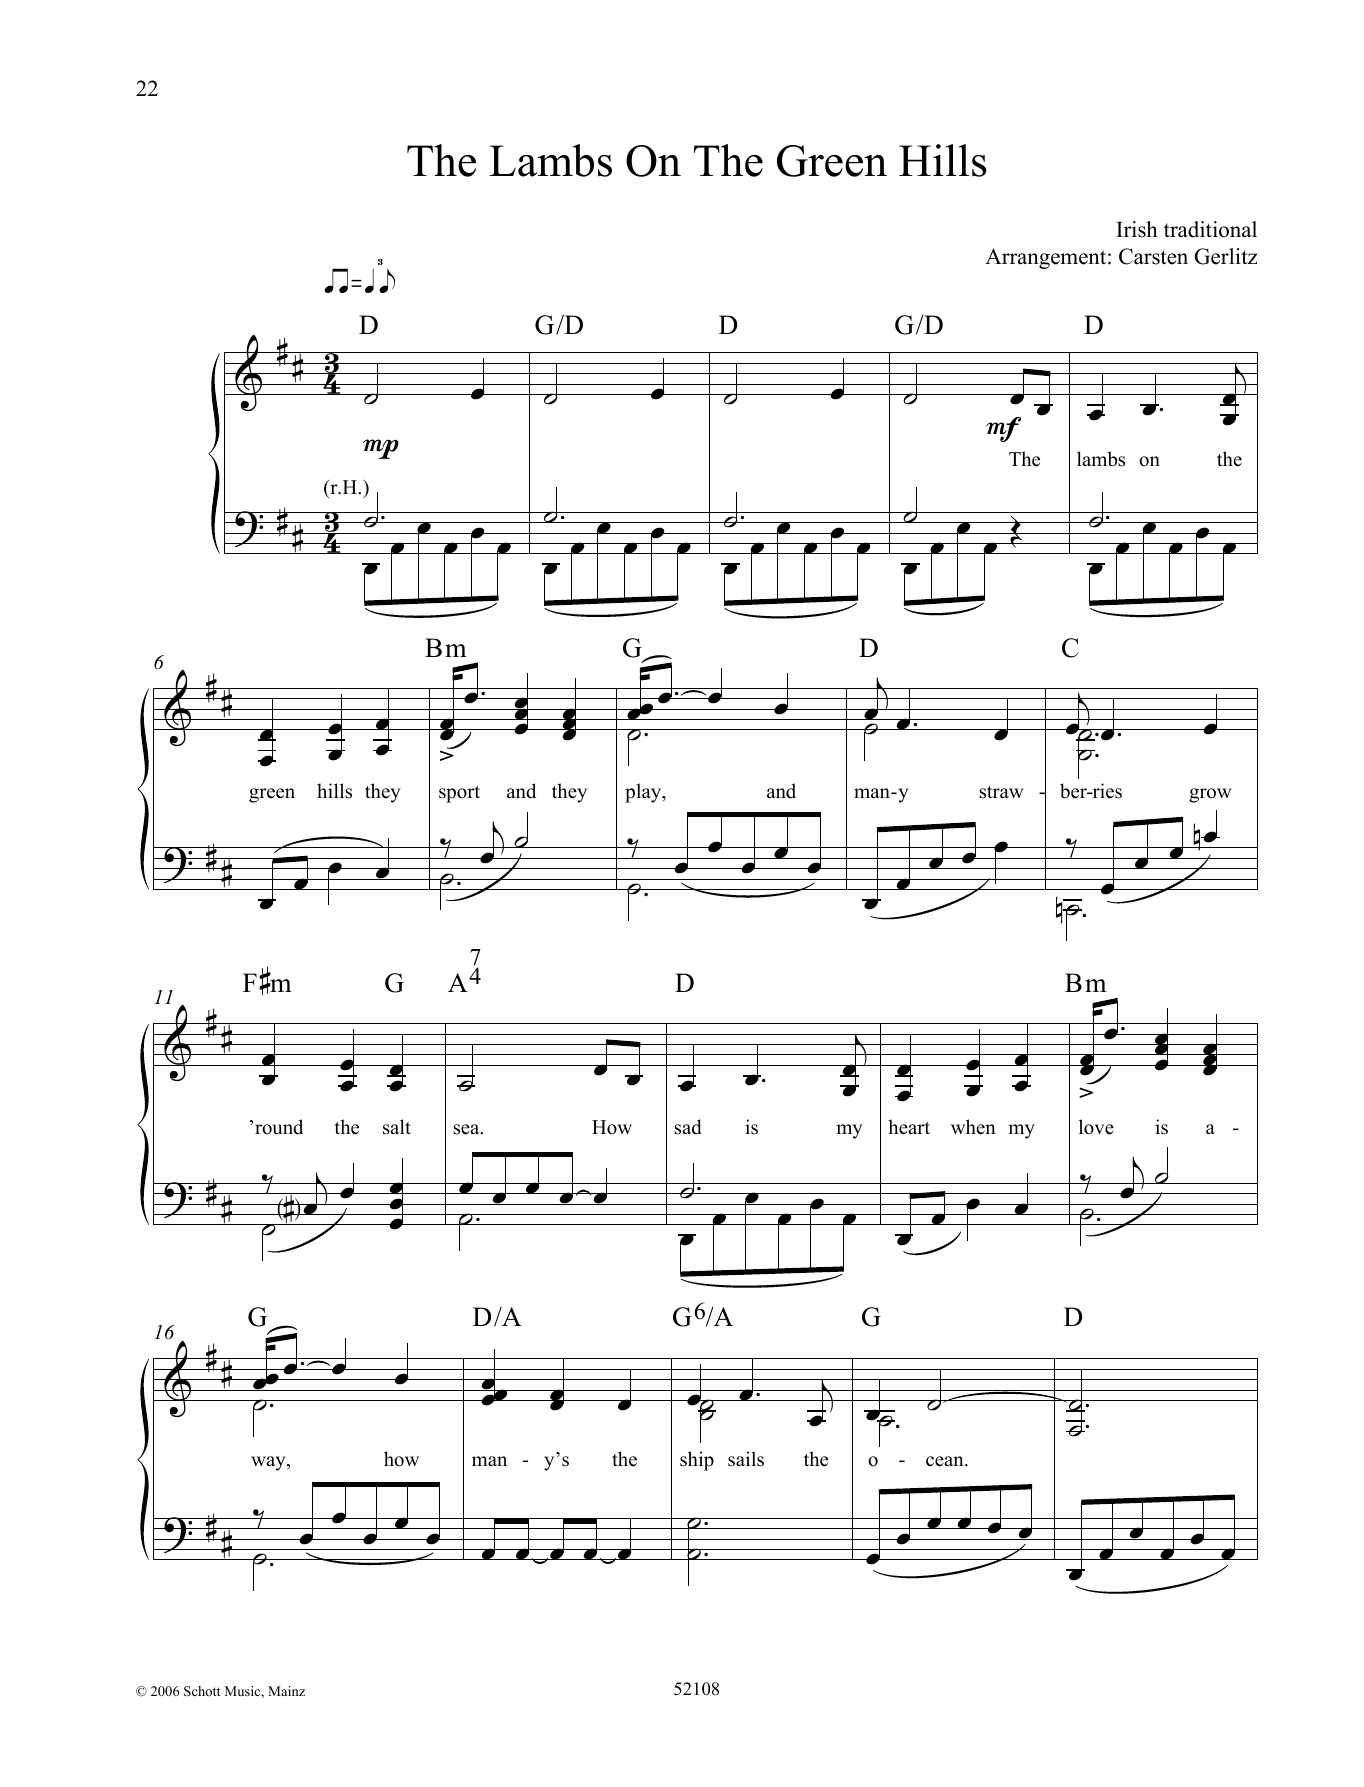 The Lambs On the Green Hills Sheet Music